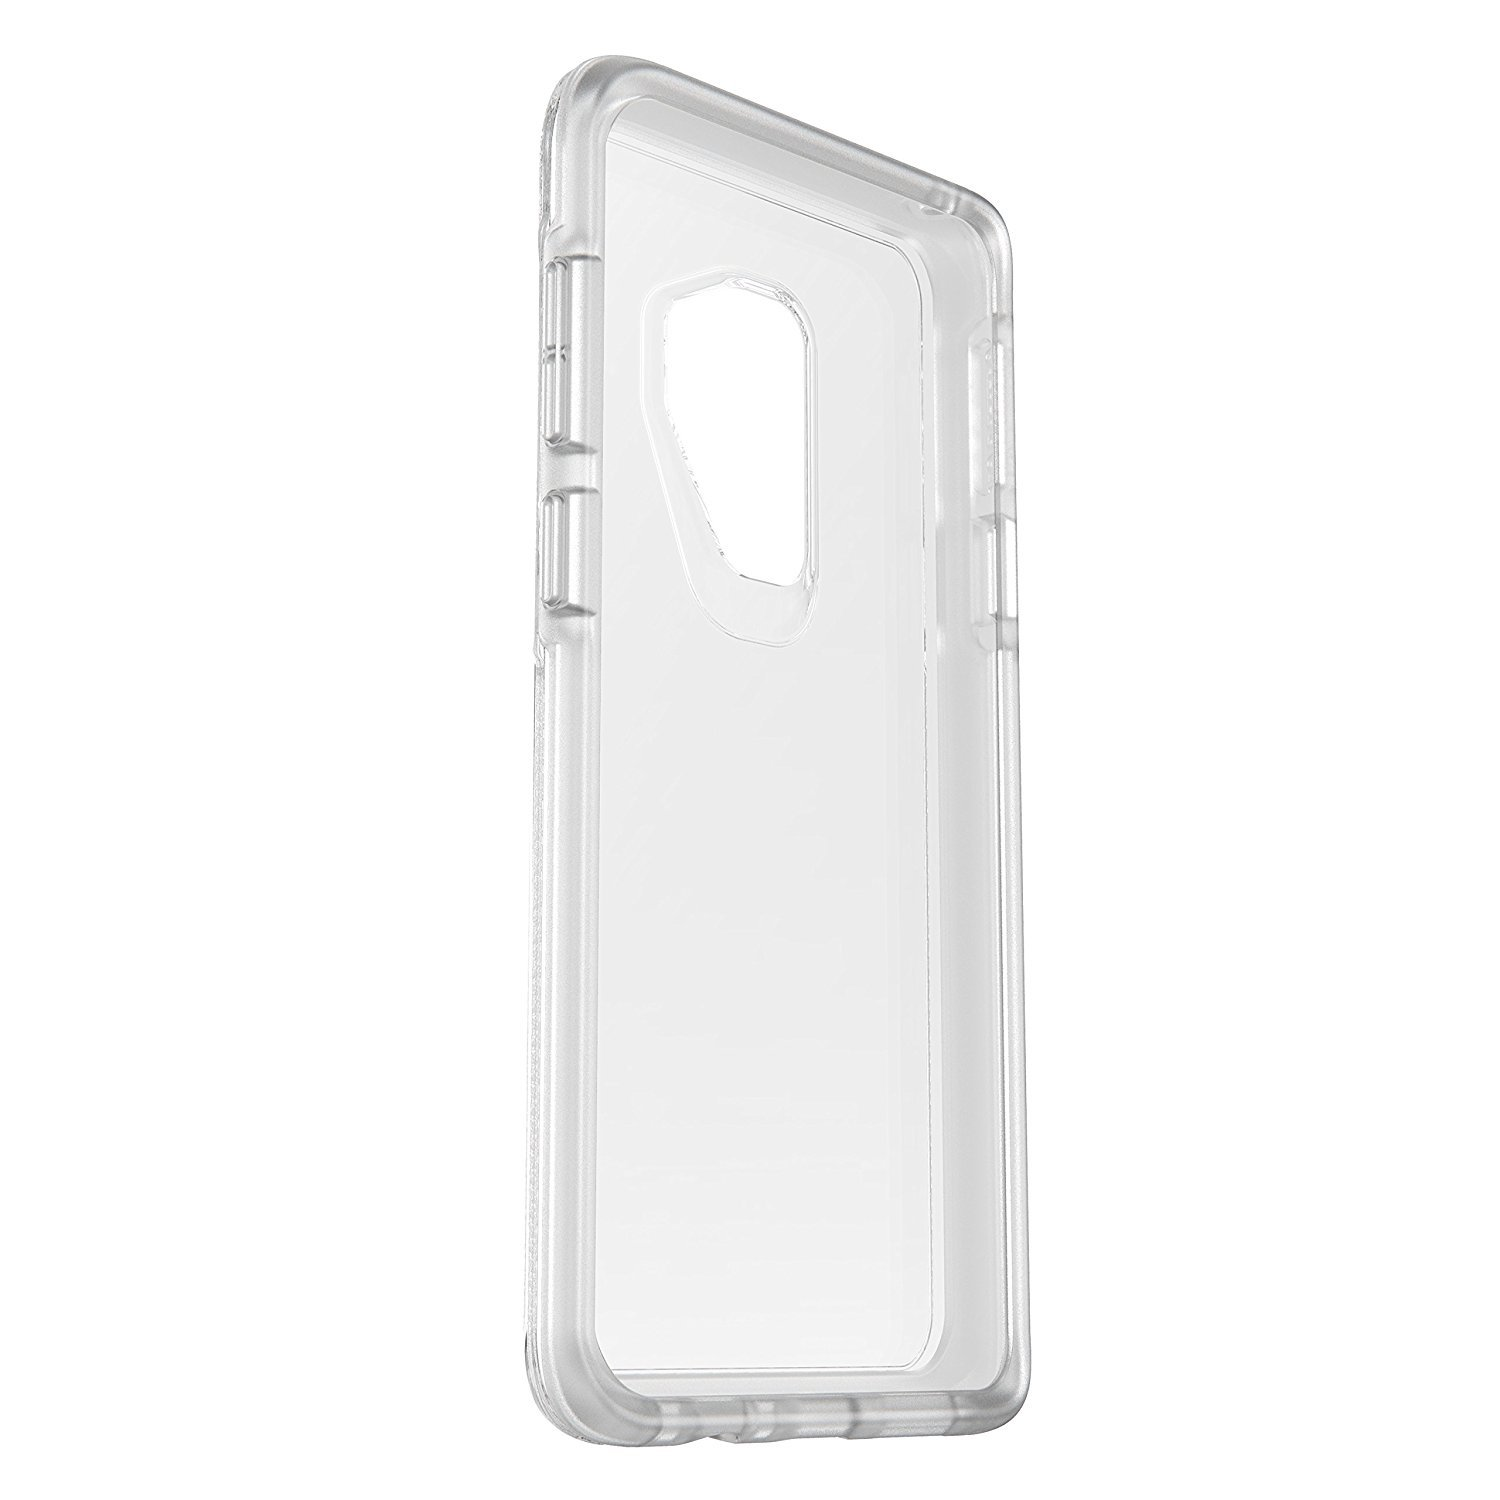 OtterBox Symmetry Clear Samsung Galaxy S9 Plus Case - Clear